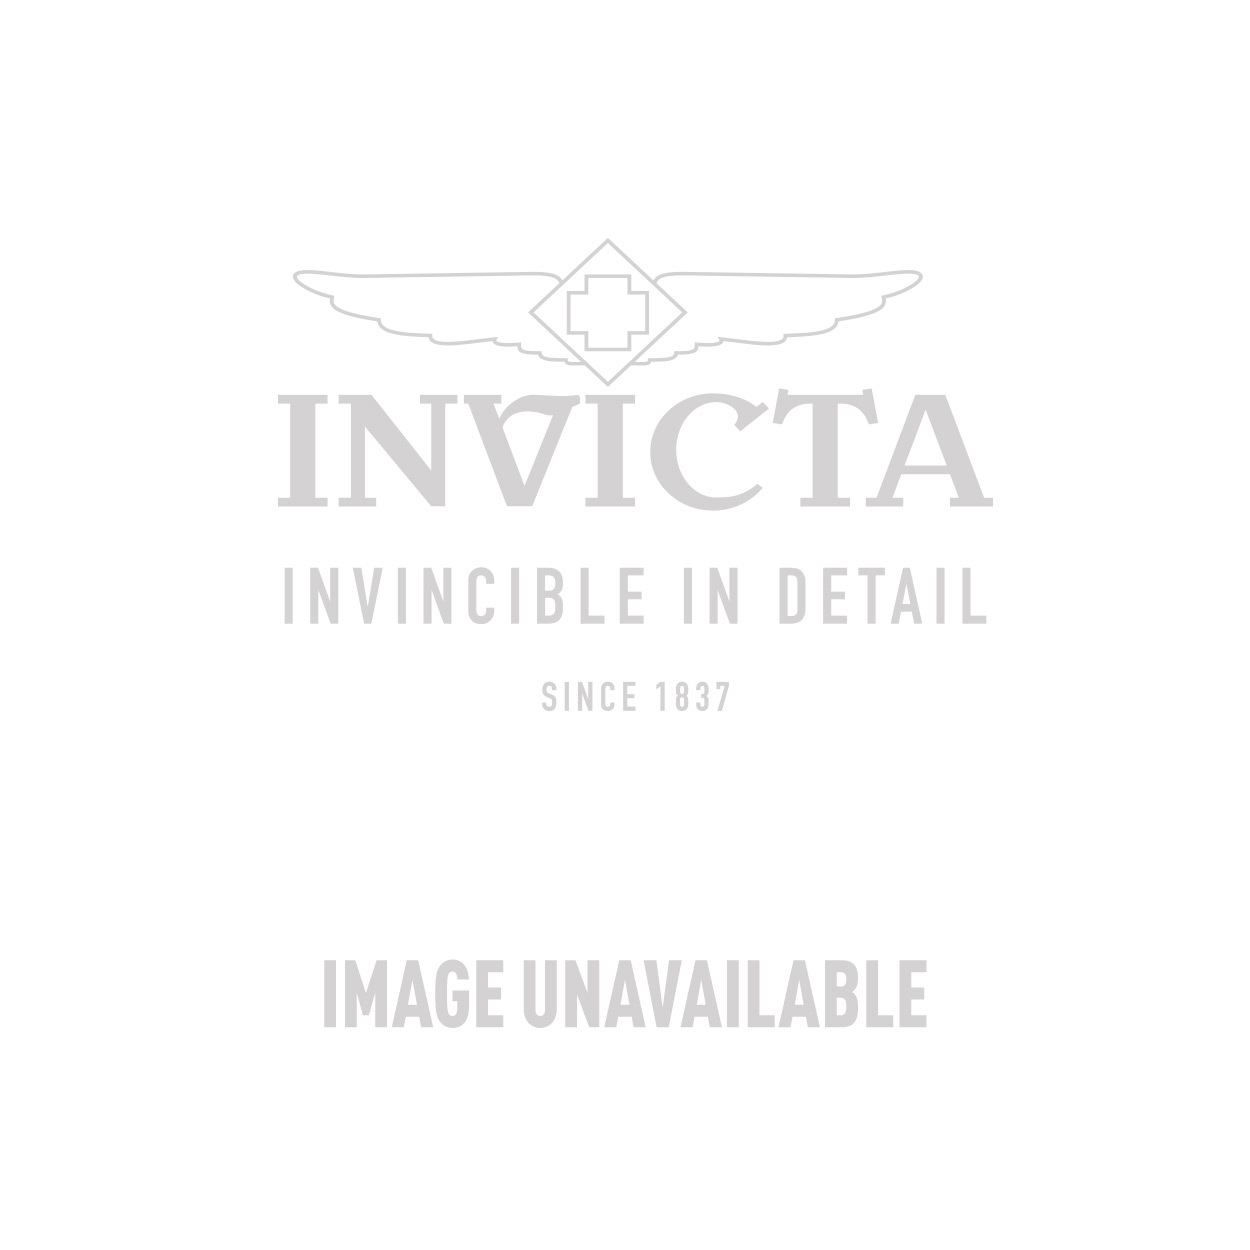 Invicta Angel Swiss Movement Quartz Watch - Gold case with Grey tone Leather band - Model 18410